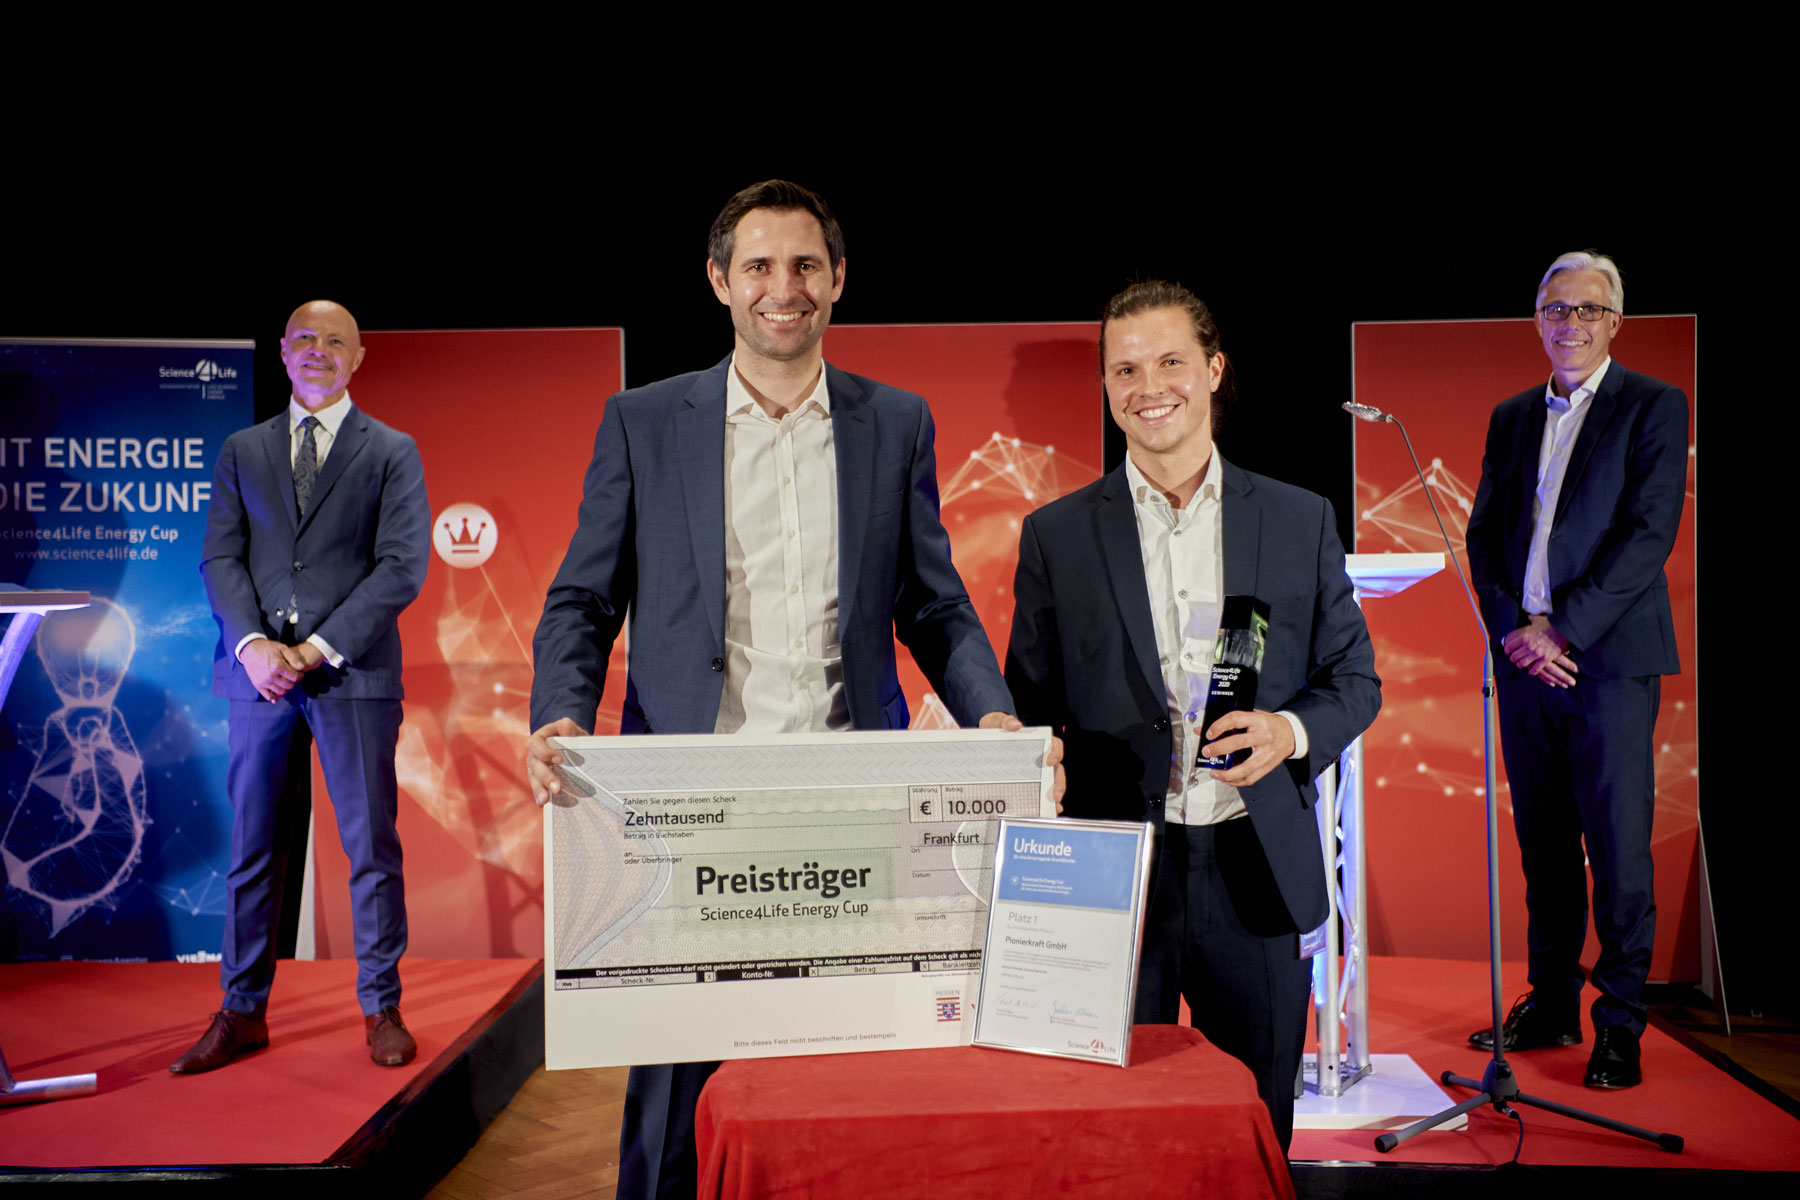 Science4Life Energy Cup, Gewinner Businessplan Wettbewerb Pionierkraft